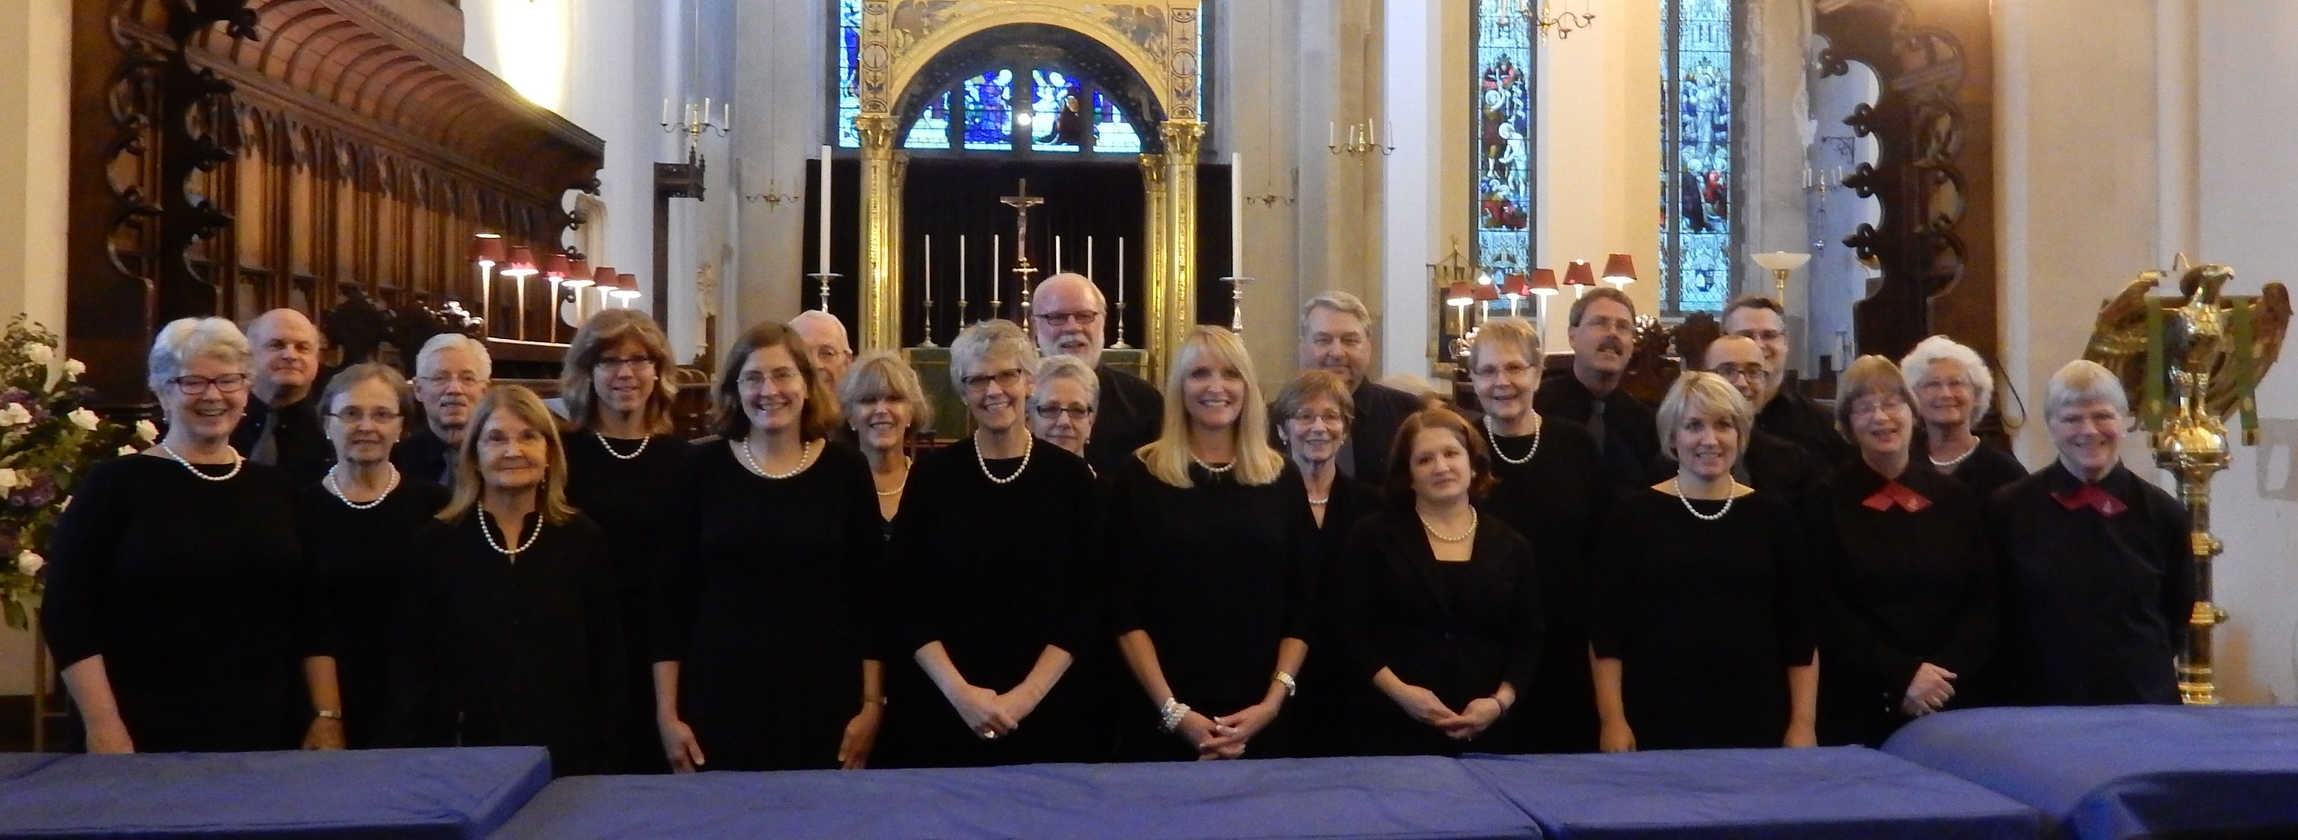 Chancel Choir in St. Andrews Cathedral during the Scotland Heritage Tour